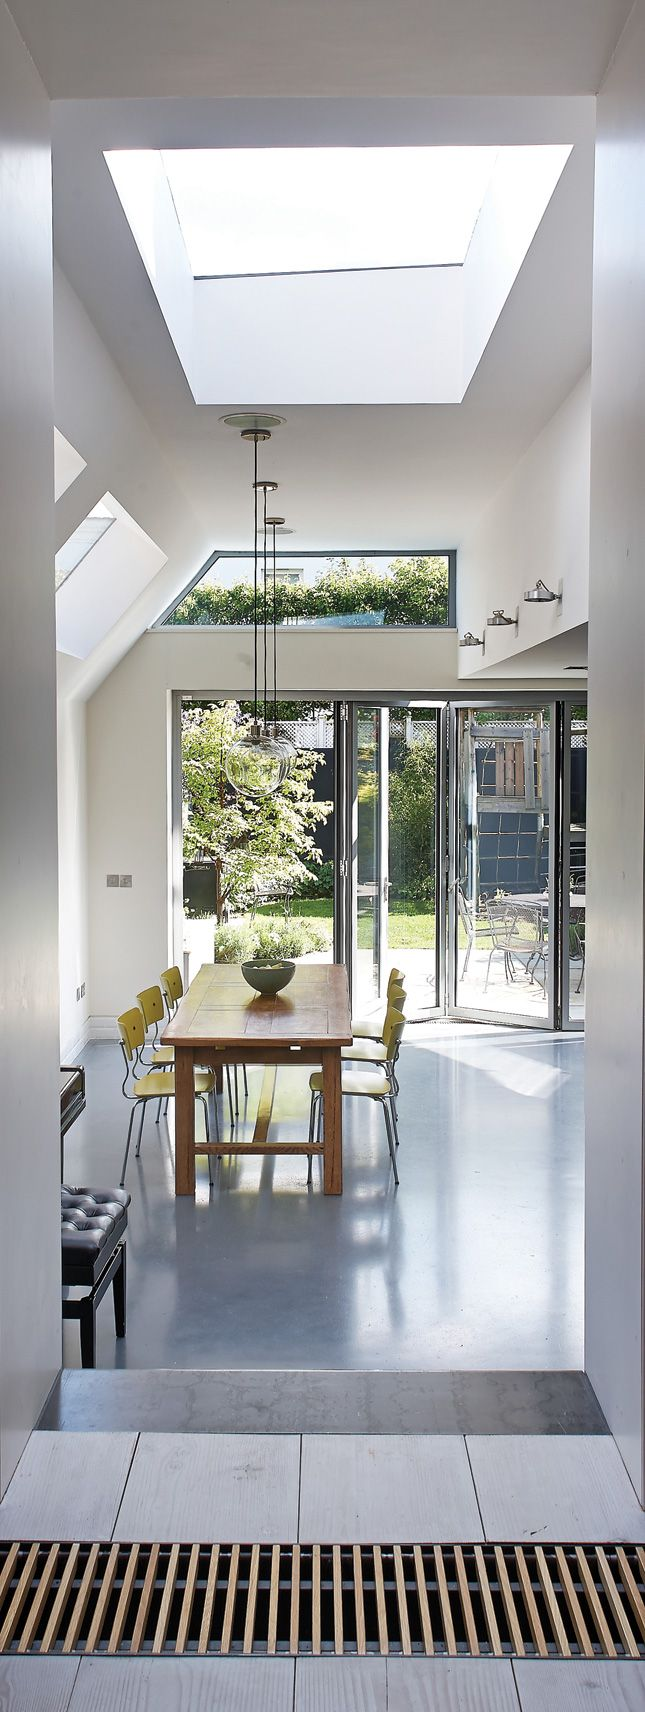 This revamped Edwardian in Dublin is the house of dreams